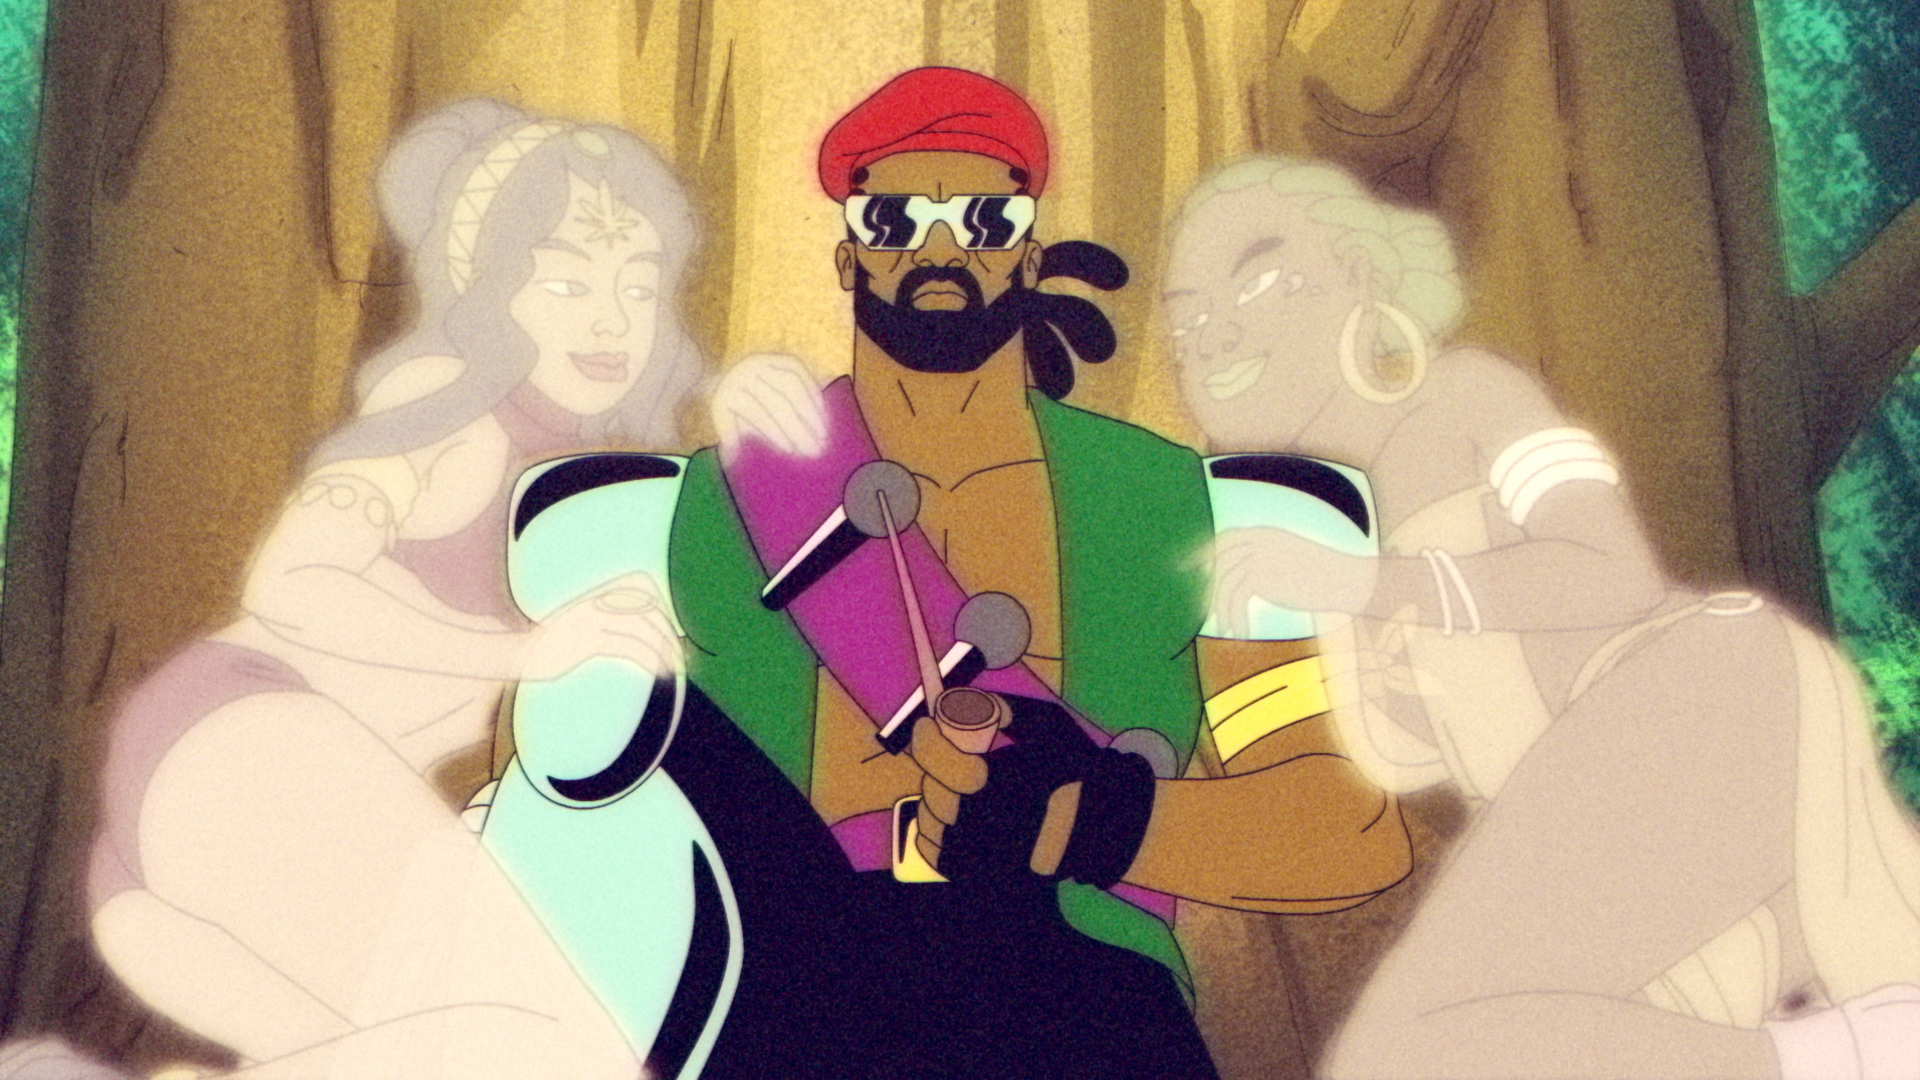 Major Lazer Wallpaper